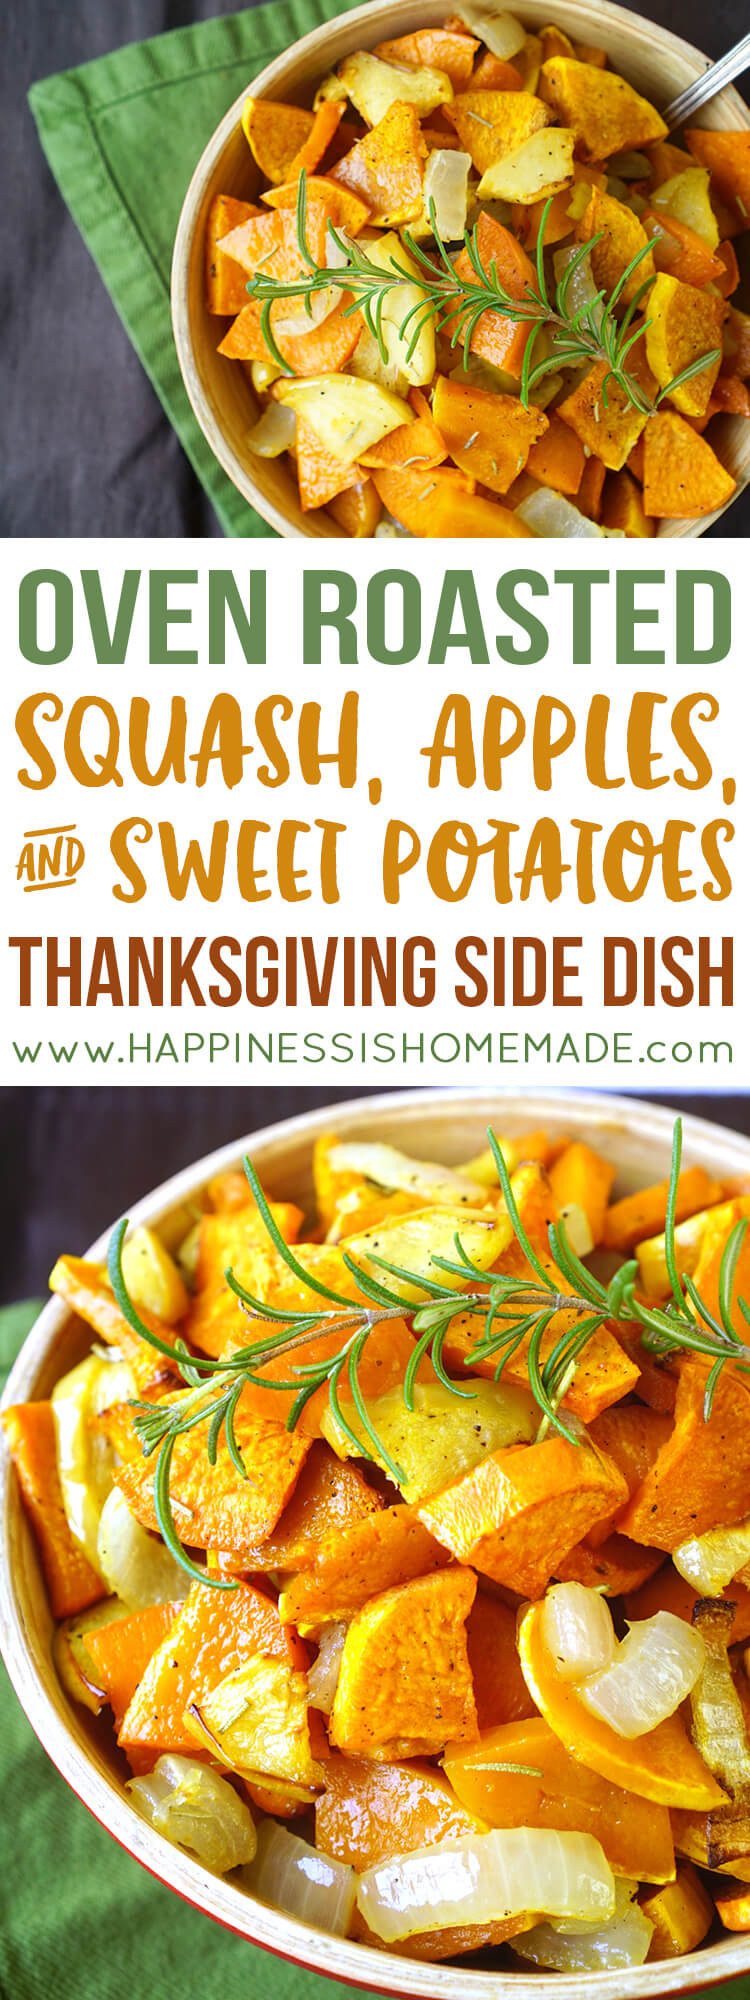 Sweet Potatoes Thanksgiving Side Dishes  Roasted Sweet Potatoes Squash & Apples Happiness is